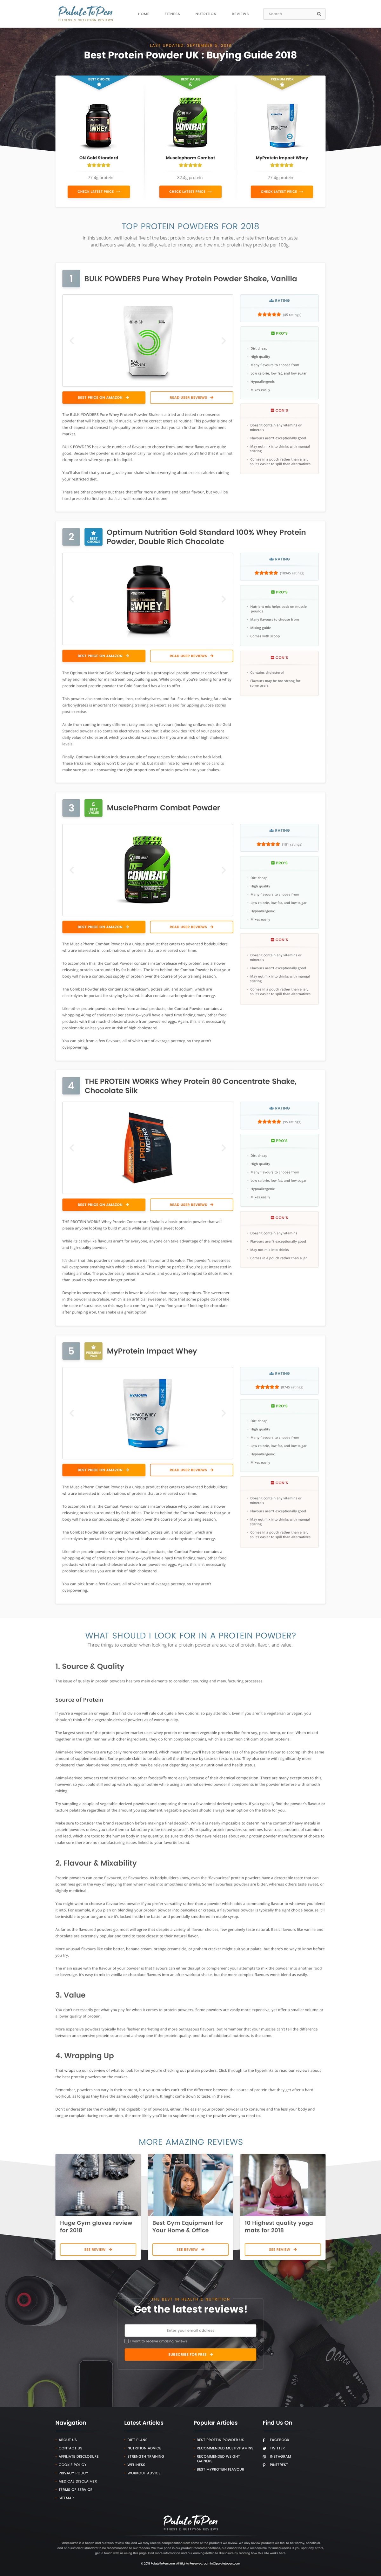 Responsive web page design for review website